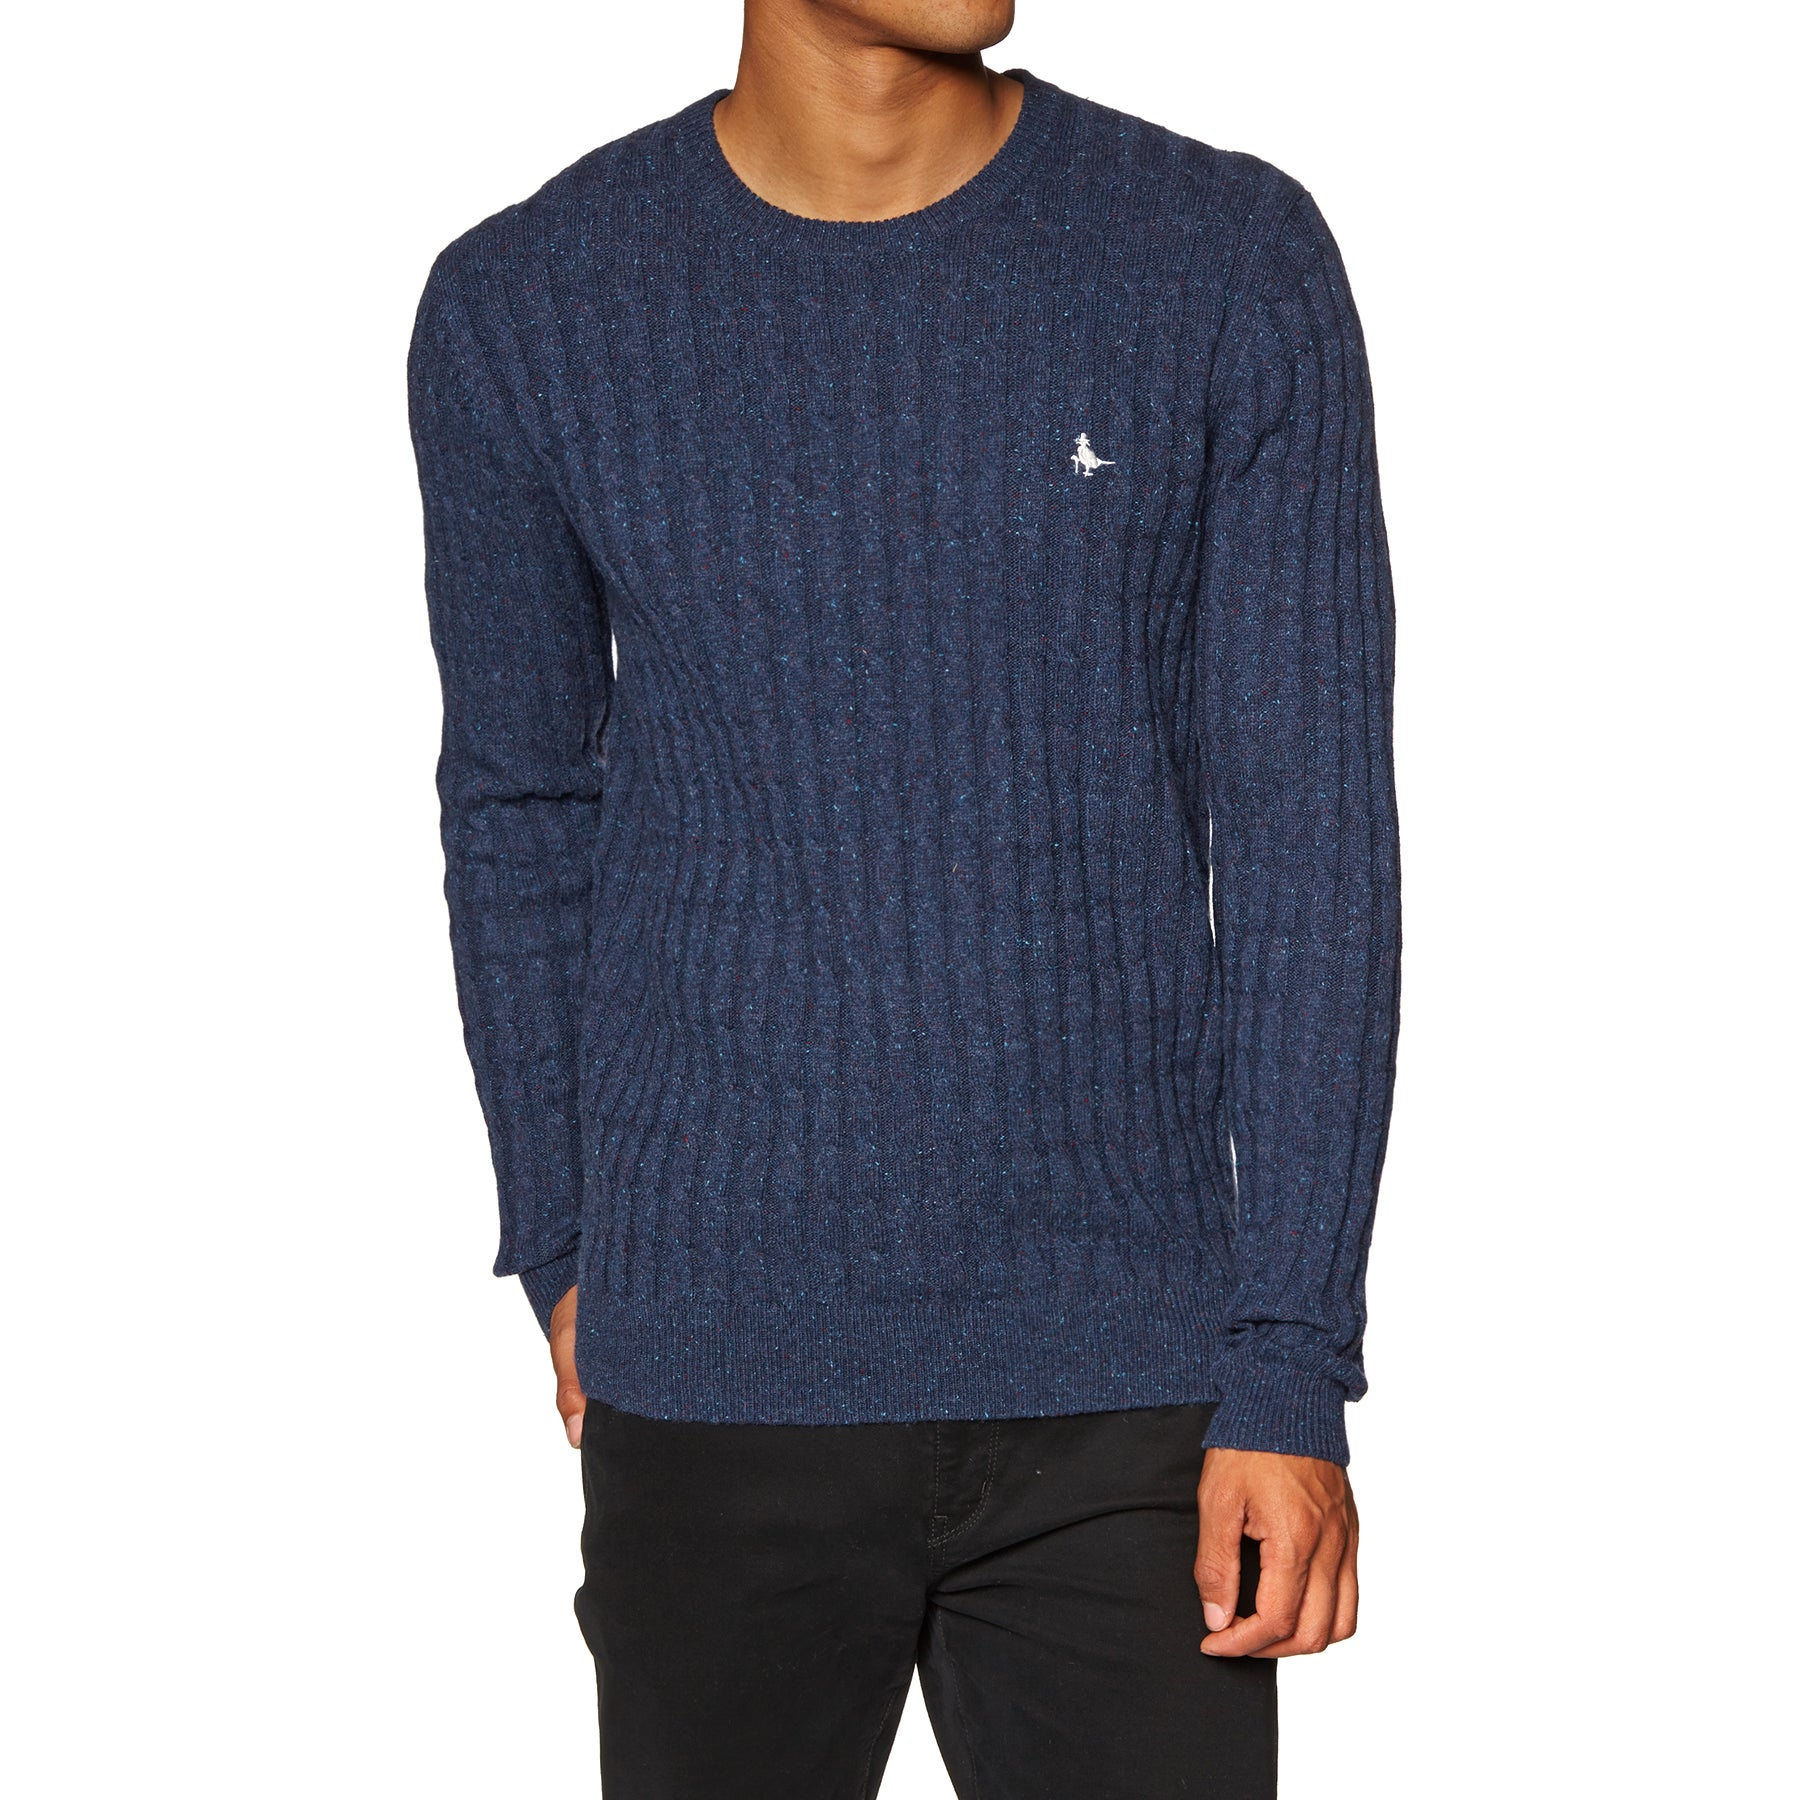 Jack Wills Marlow Cable Crew Sweater - Navy